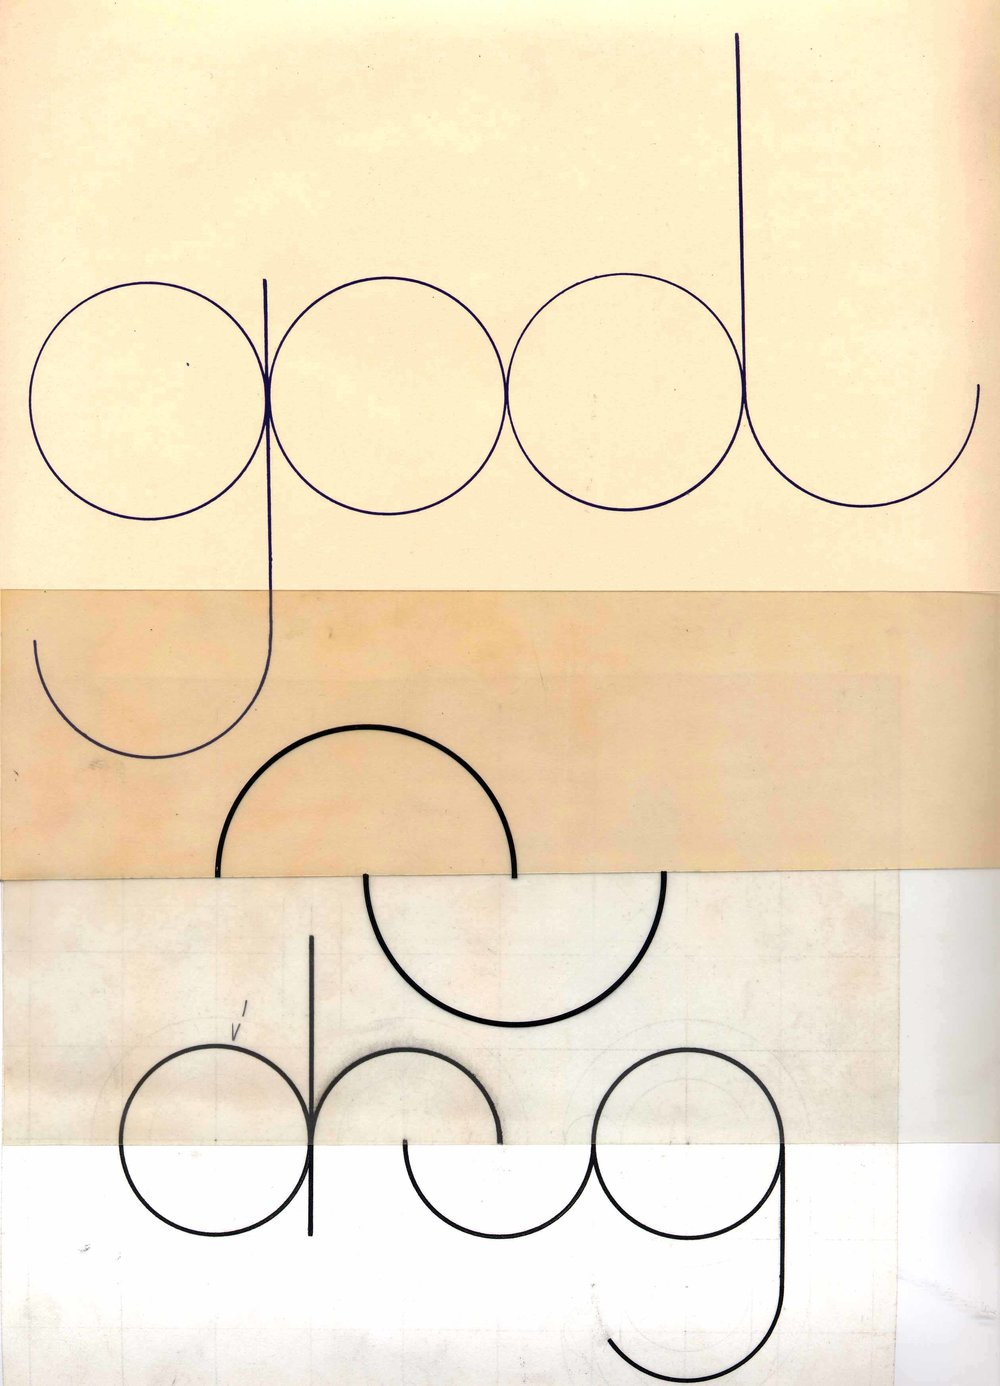 LE DRUG, graphics, 1965 Collection François Dallegret